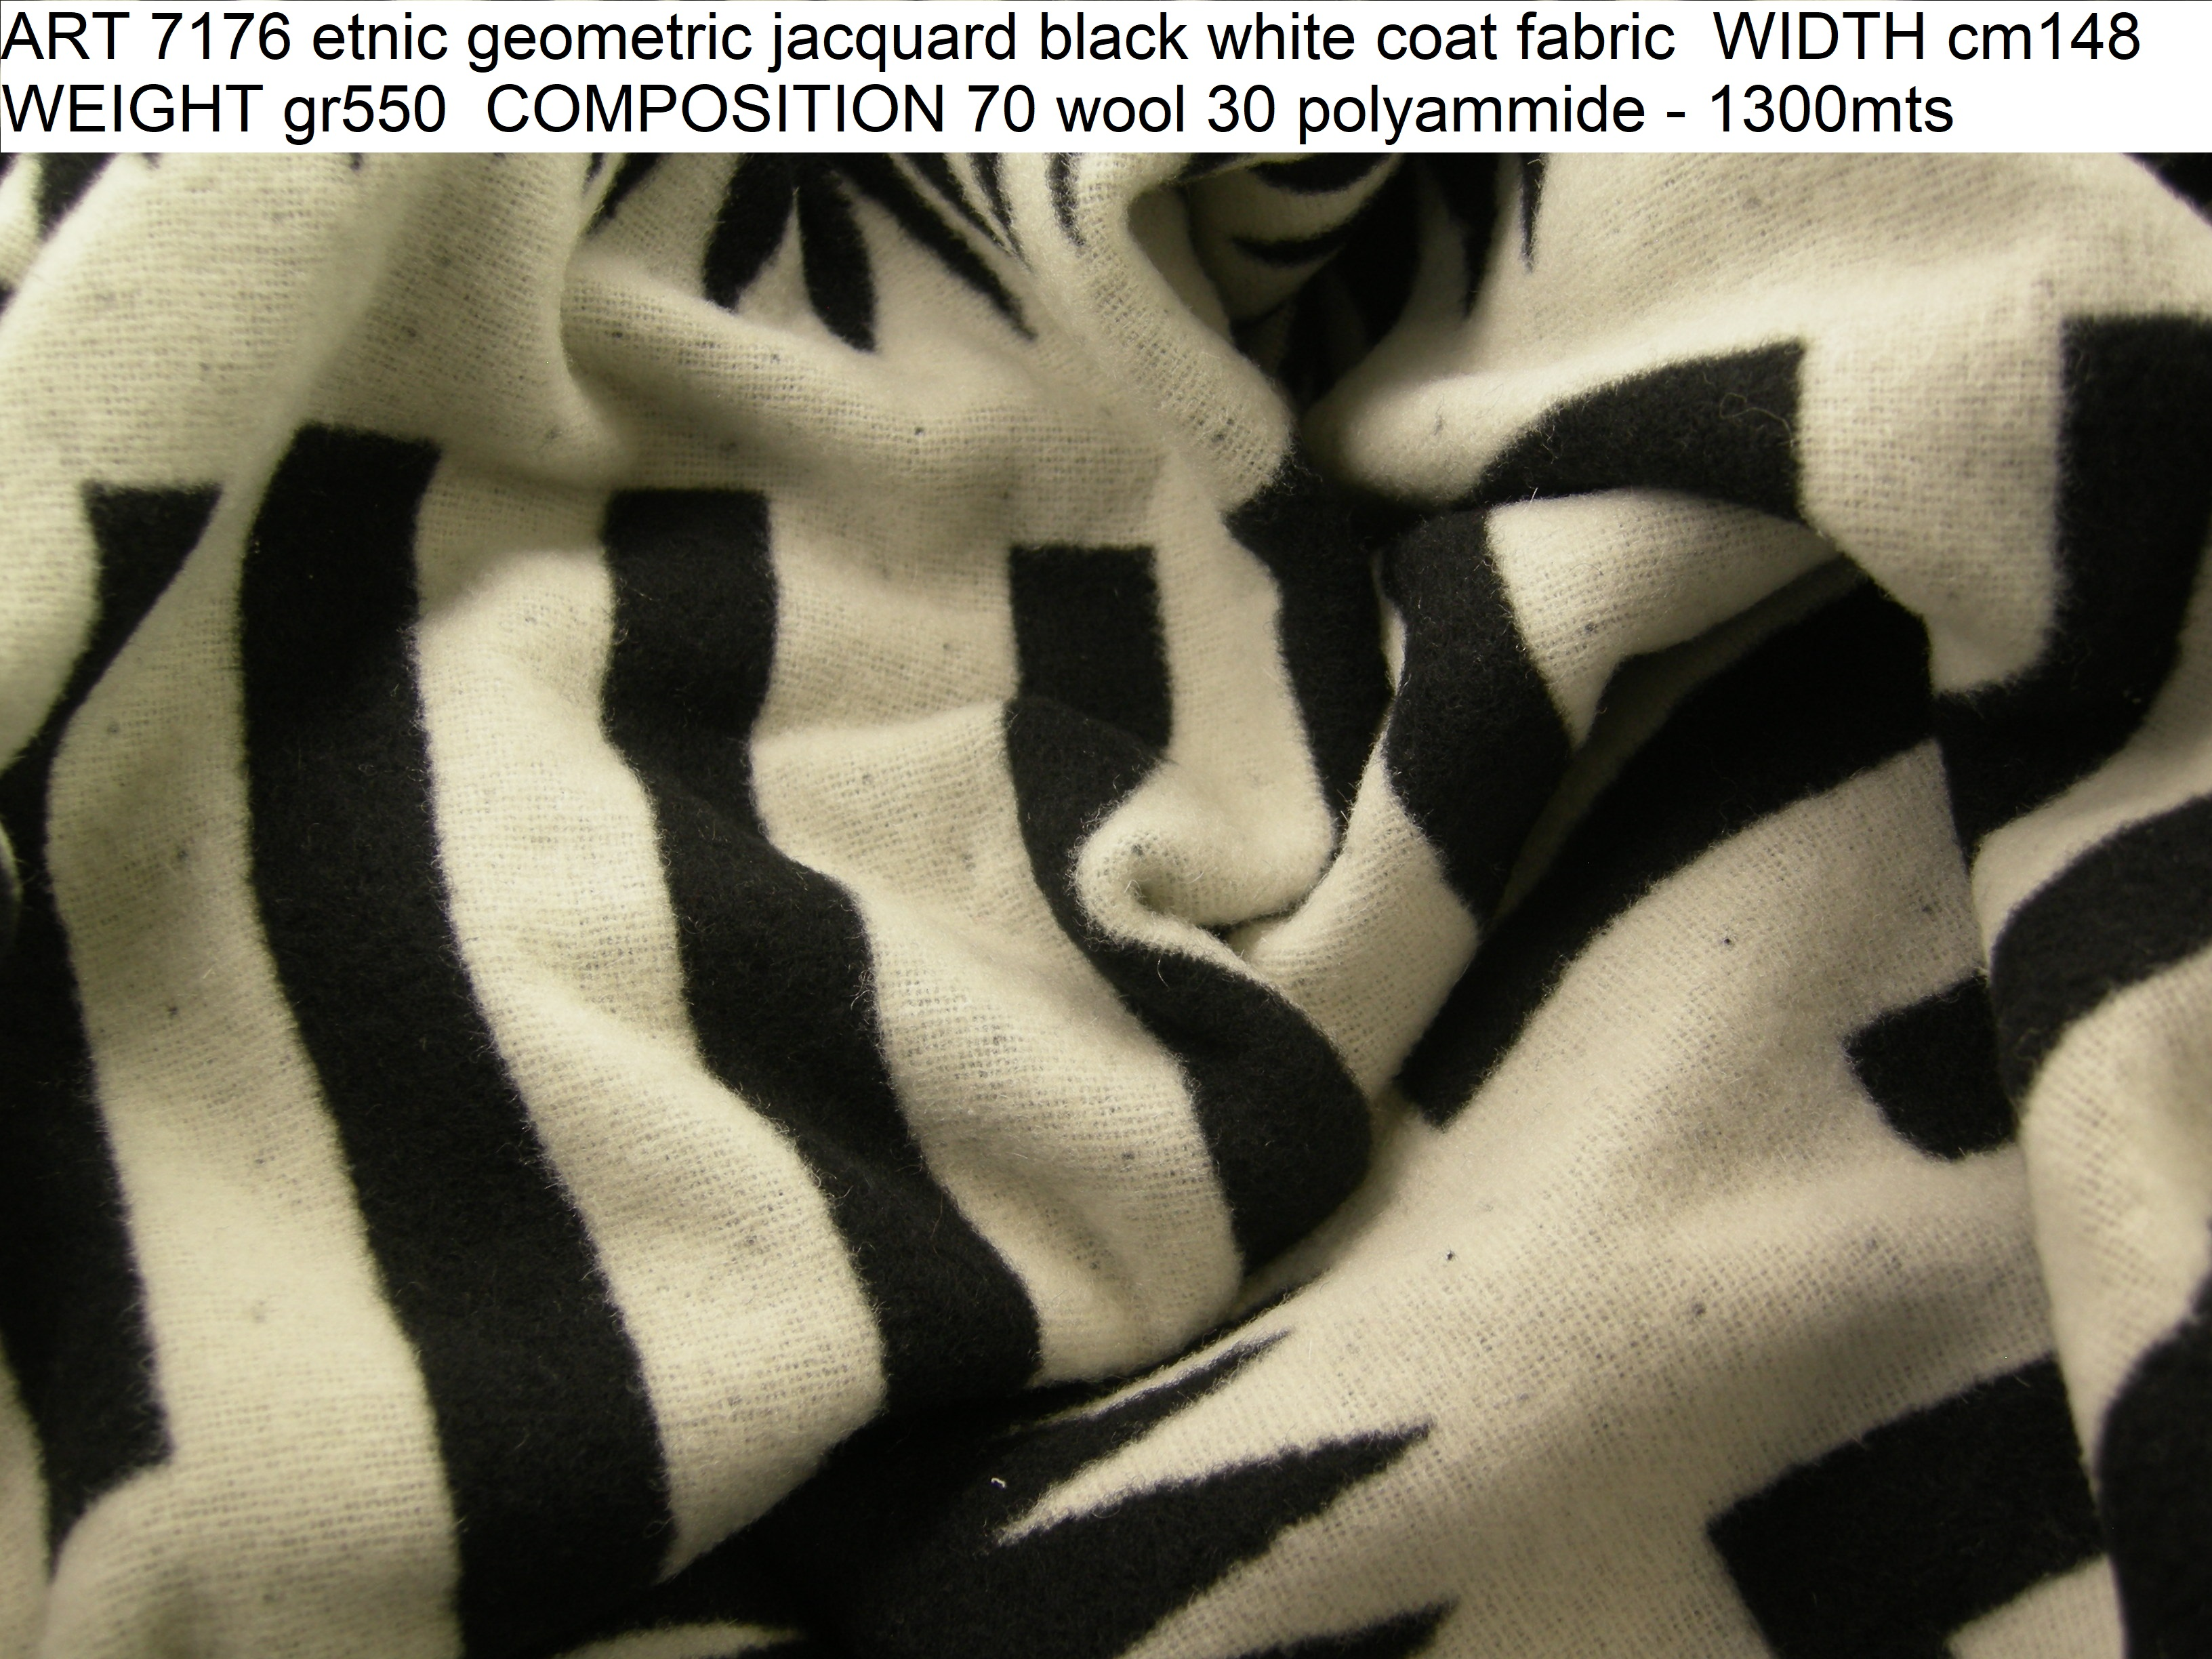 ART 7176 etnic geometric jacquard black white coat fabric WIDTH cm148 WEIGHT gr550 COMPOSITION 70 wool 30 polyammide - 1300mts